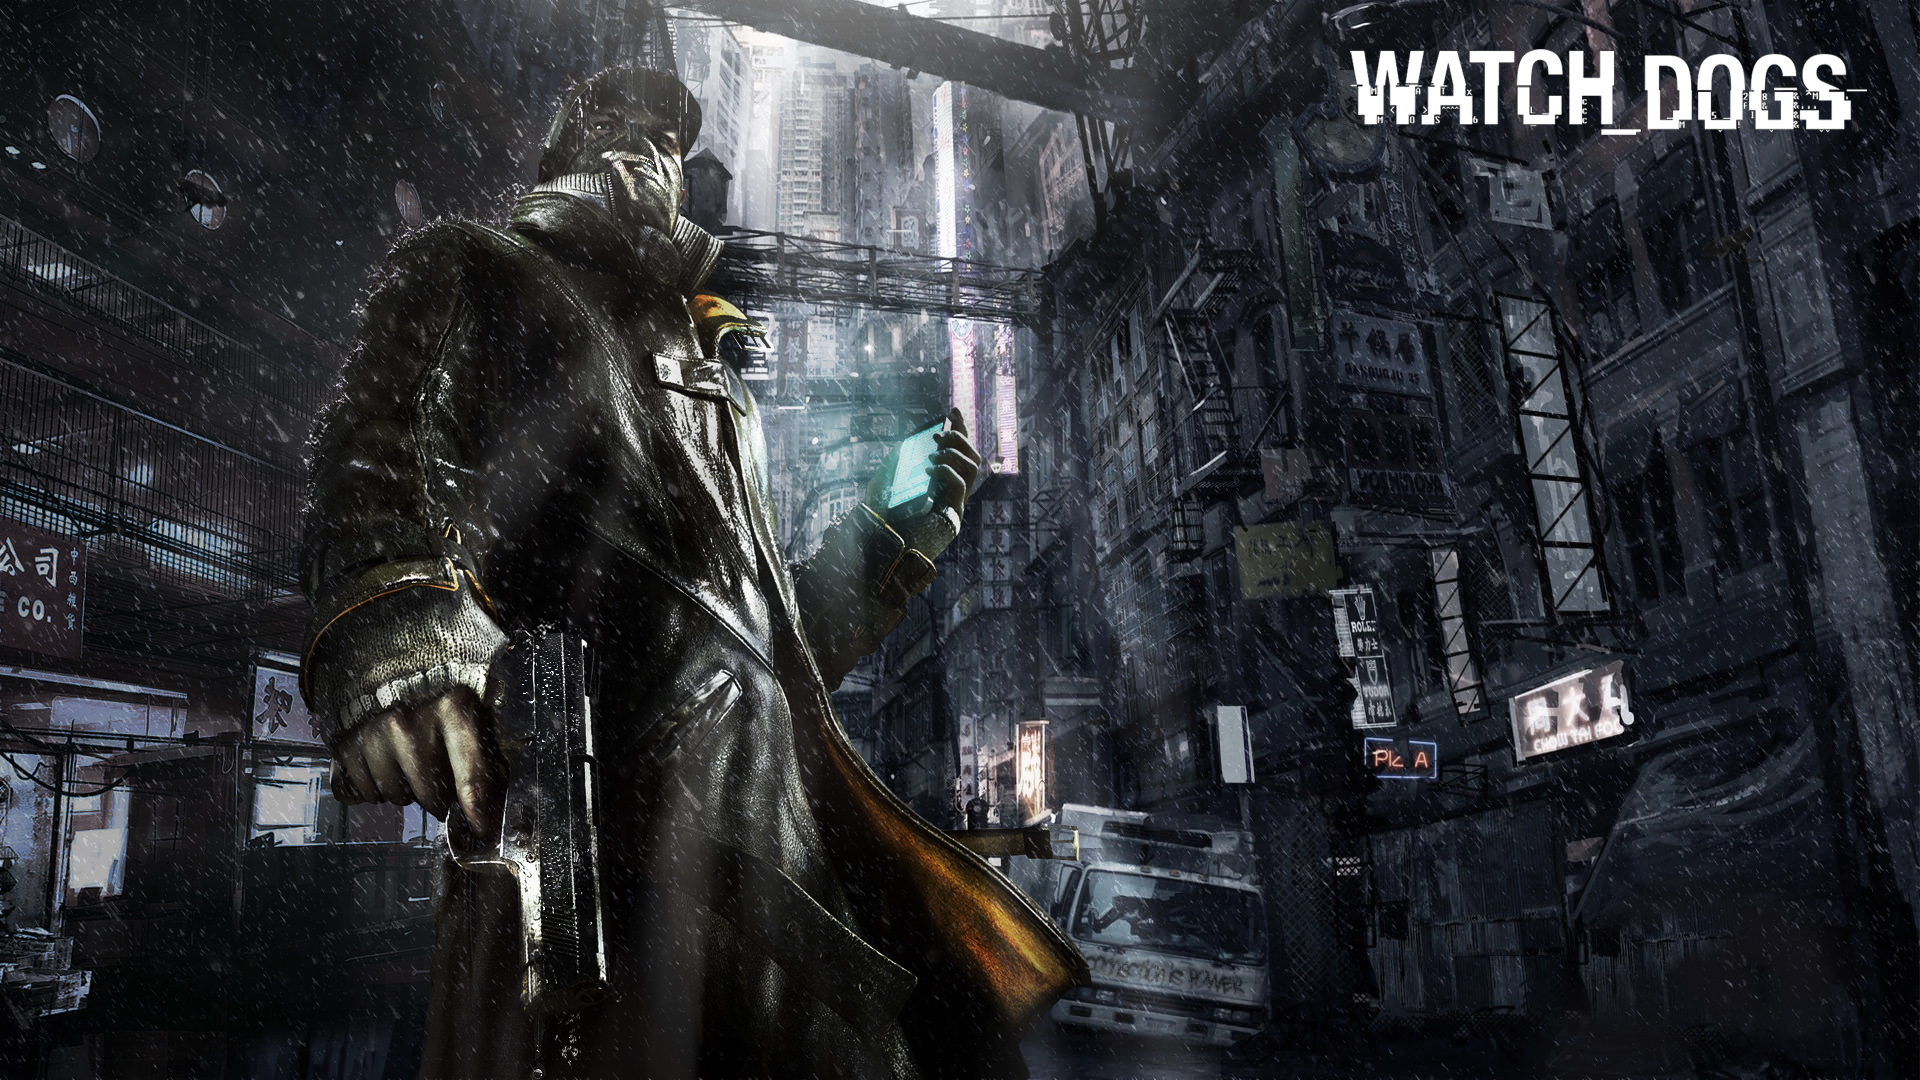 Watch Dogs Game Wallpapers HD Wallpapers 1920x1080